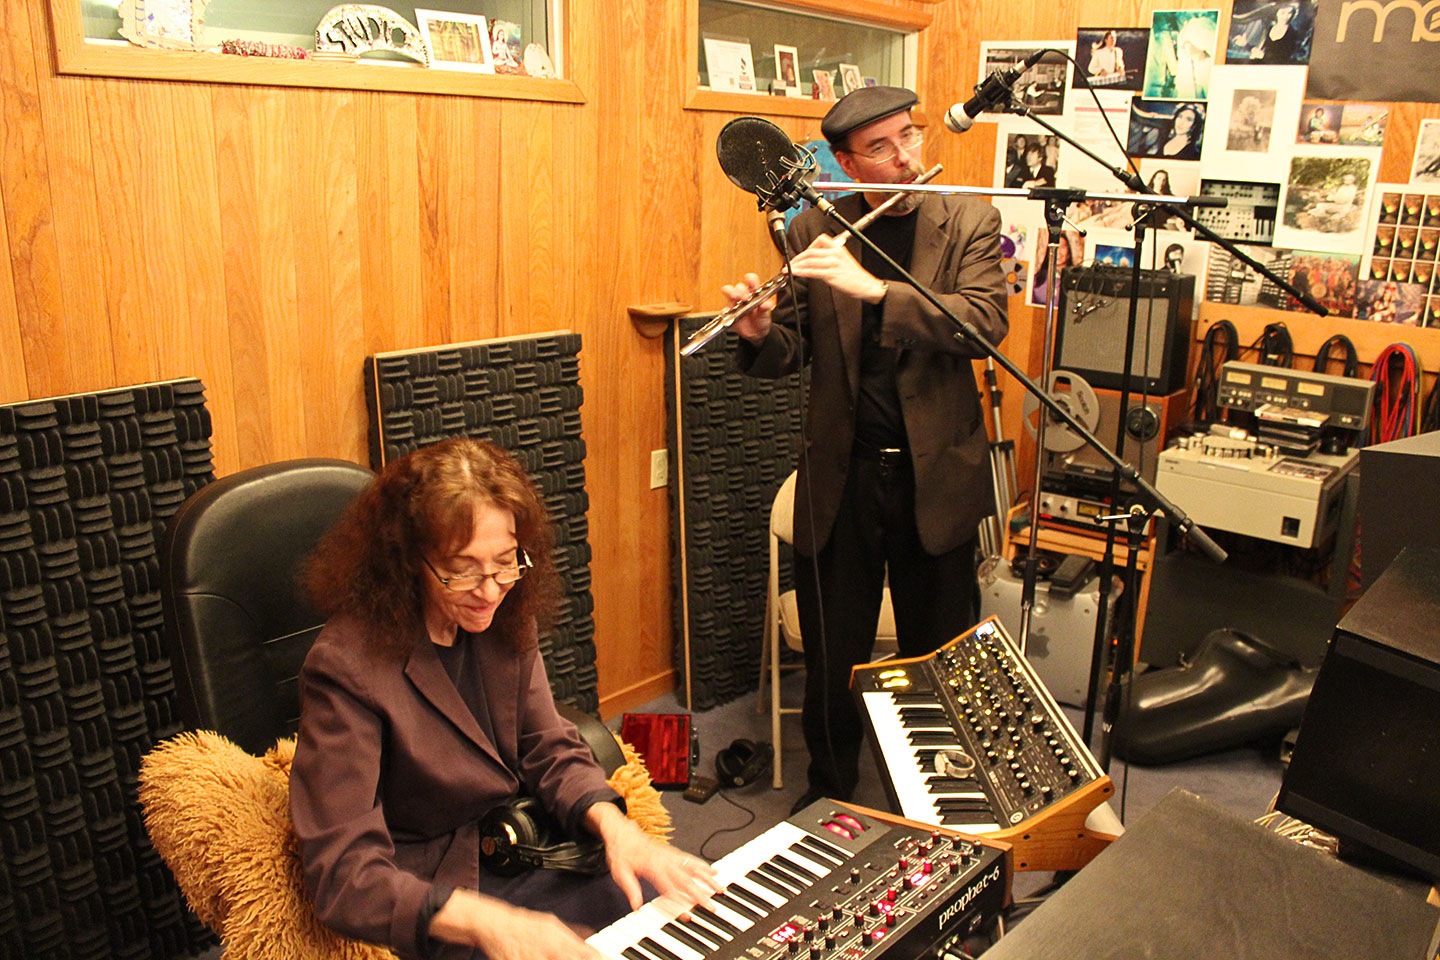 Invincible Recordings Studio Phoenix Greg Fishman and Judy Roberts Jamming image